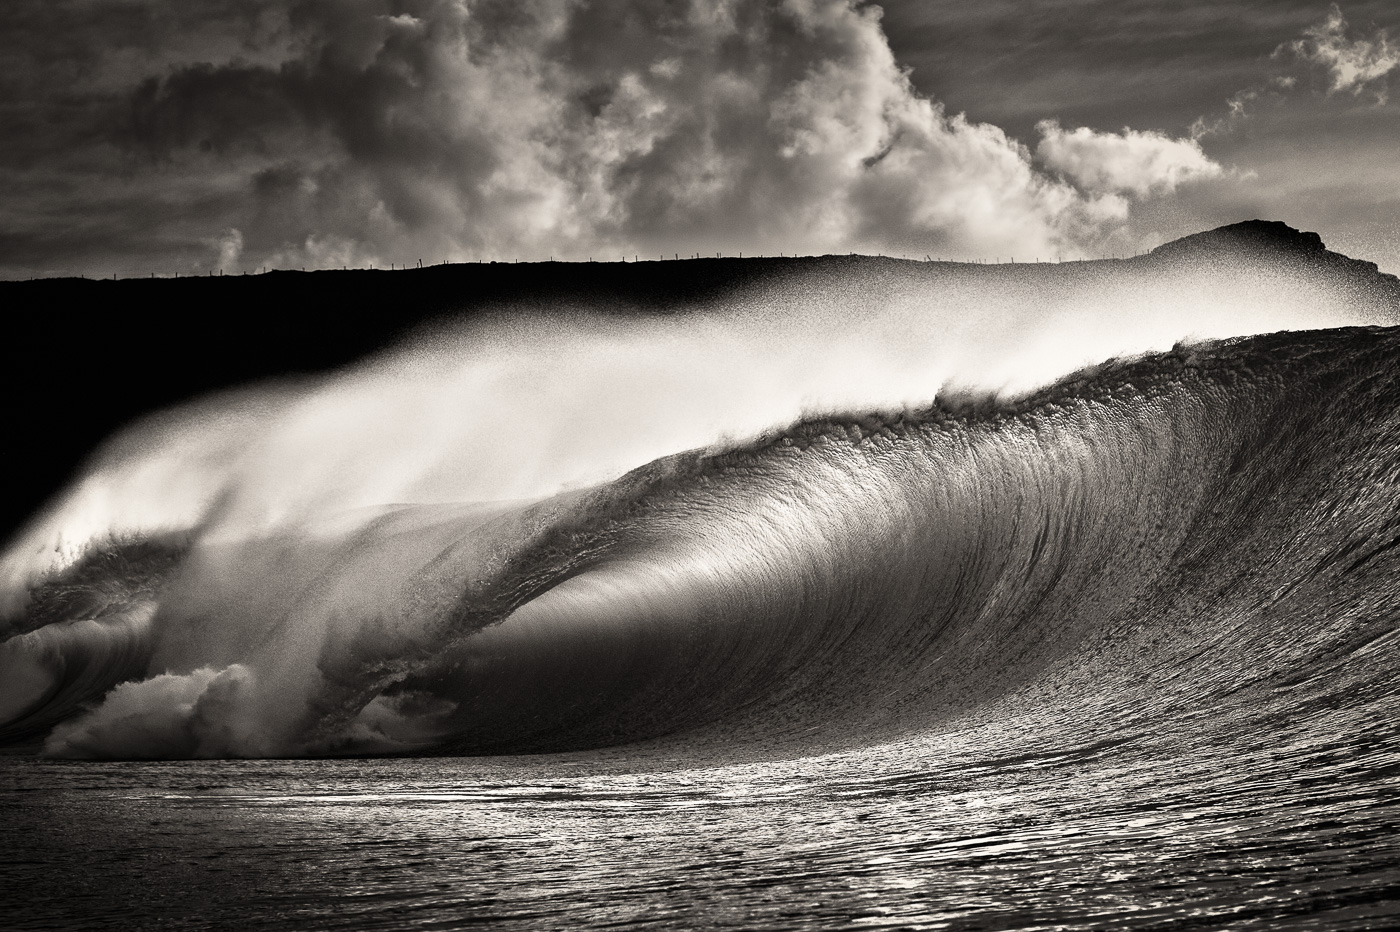 rileys_wave_black_and_white